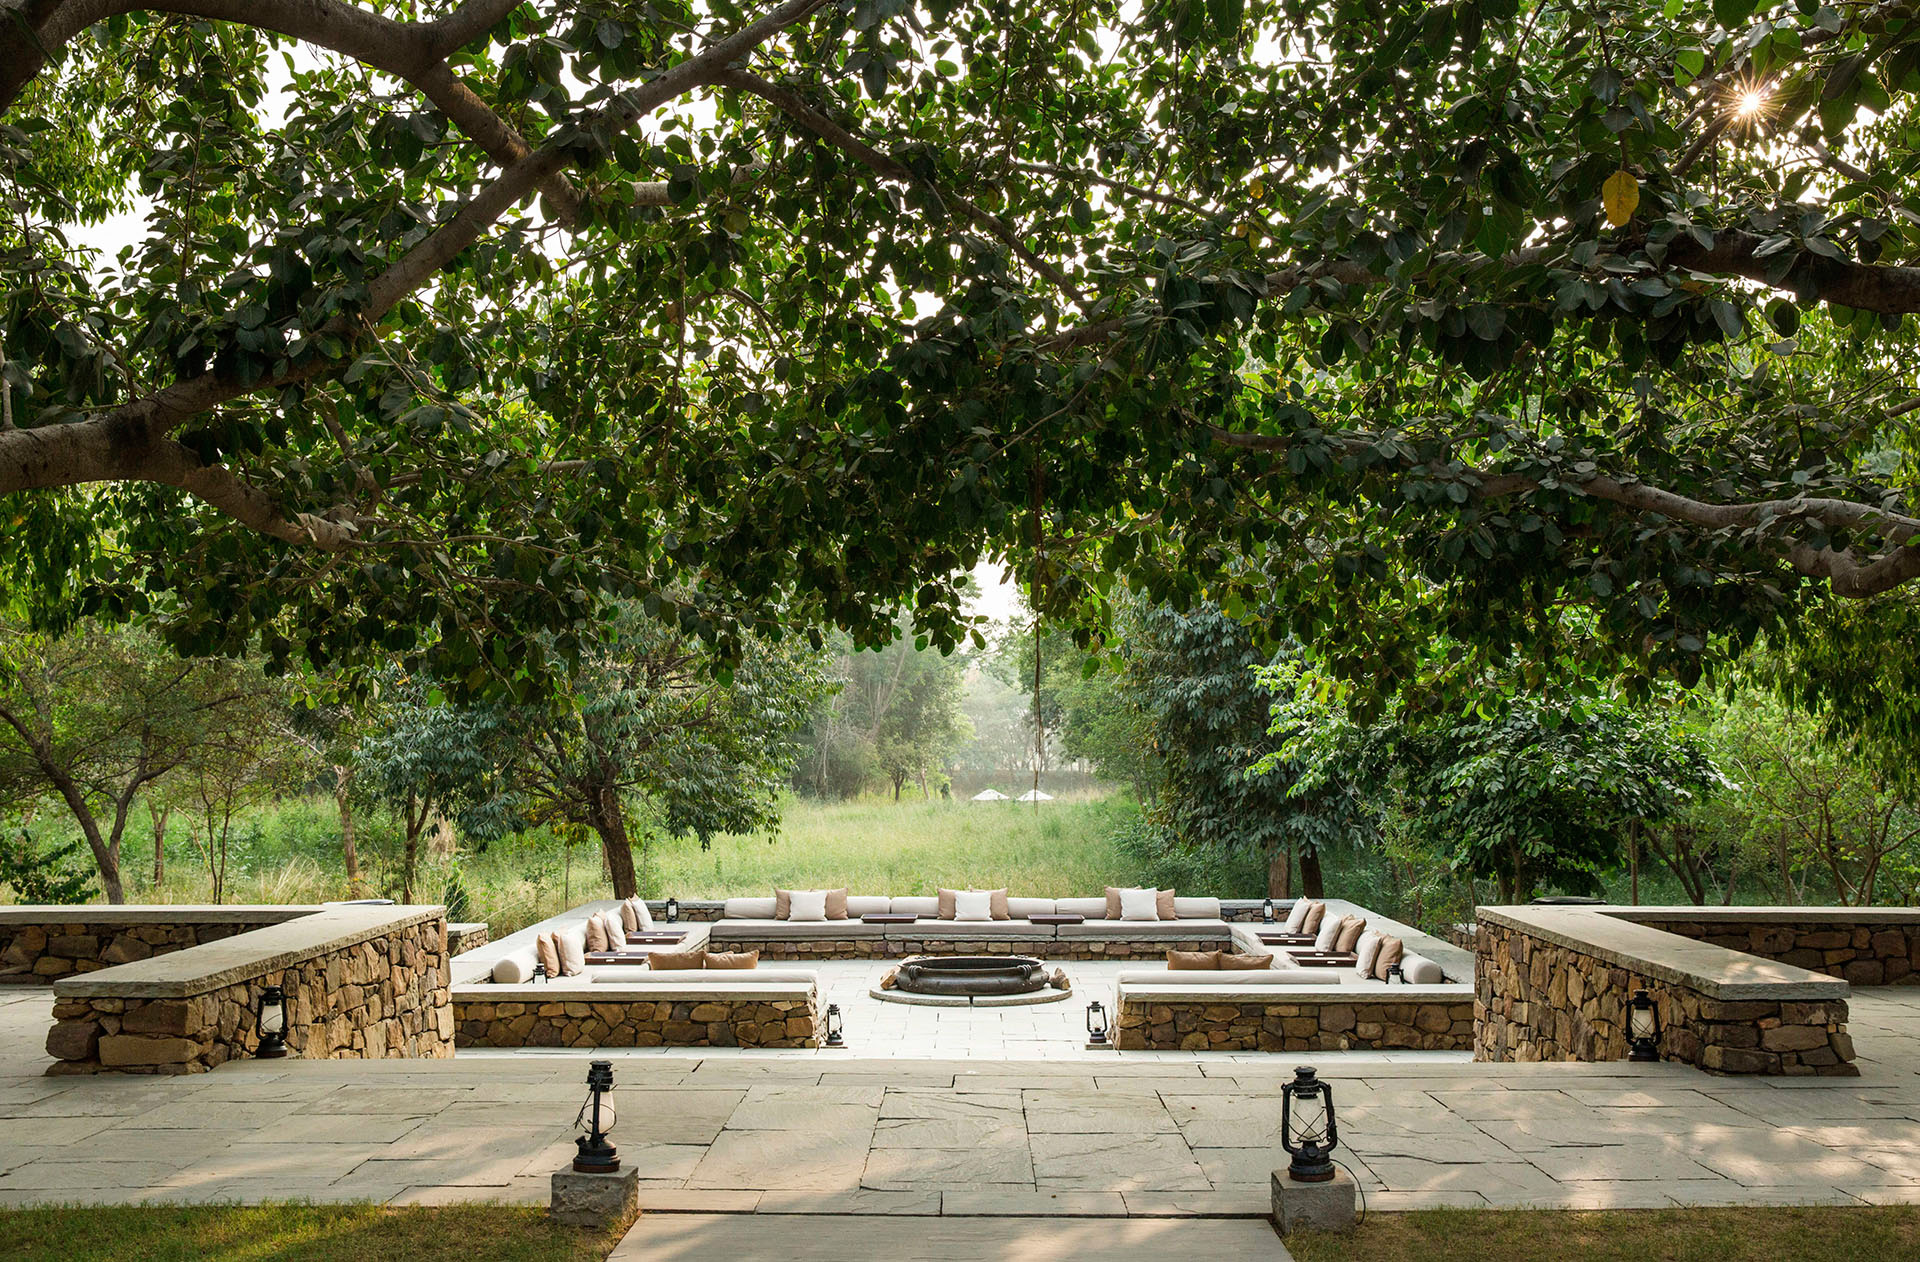 Communal firepit at the Aman-i-khas, Ranthambore, Rajasthan |Glamping| Resorts | STIRworld